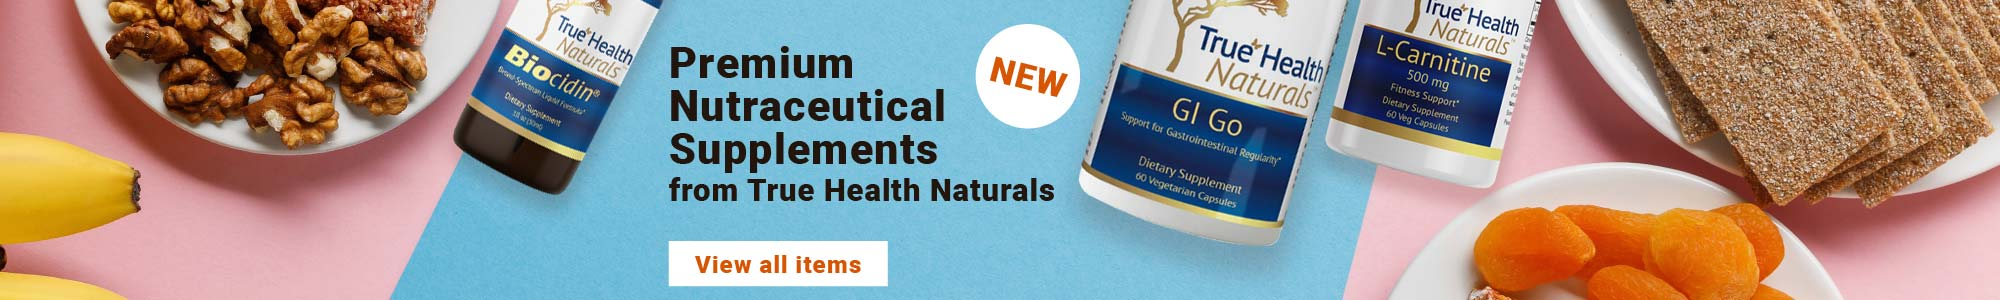 New! Premium Nutraceutical Supplements from True Health Naturals. View all items.